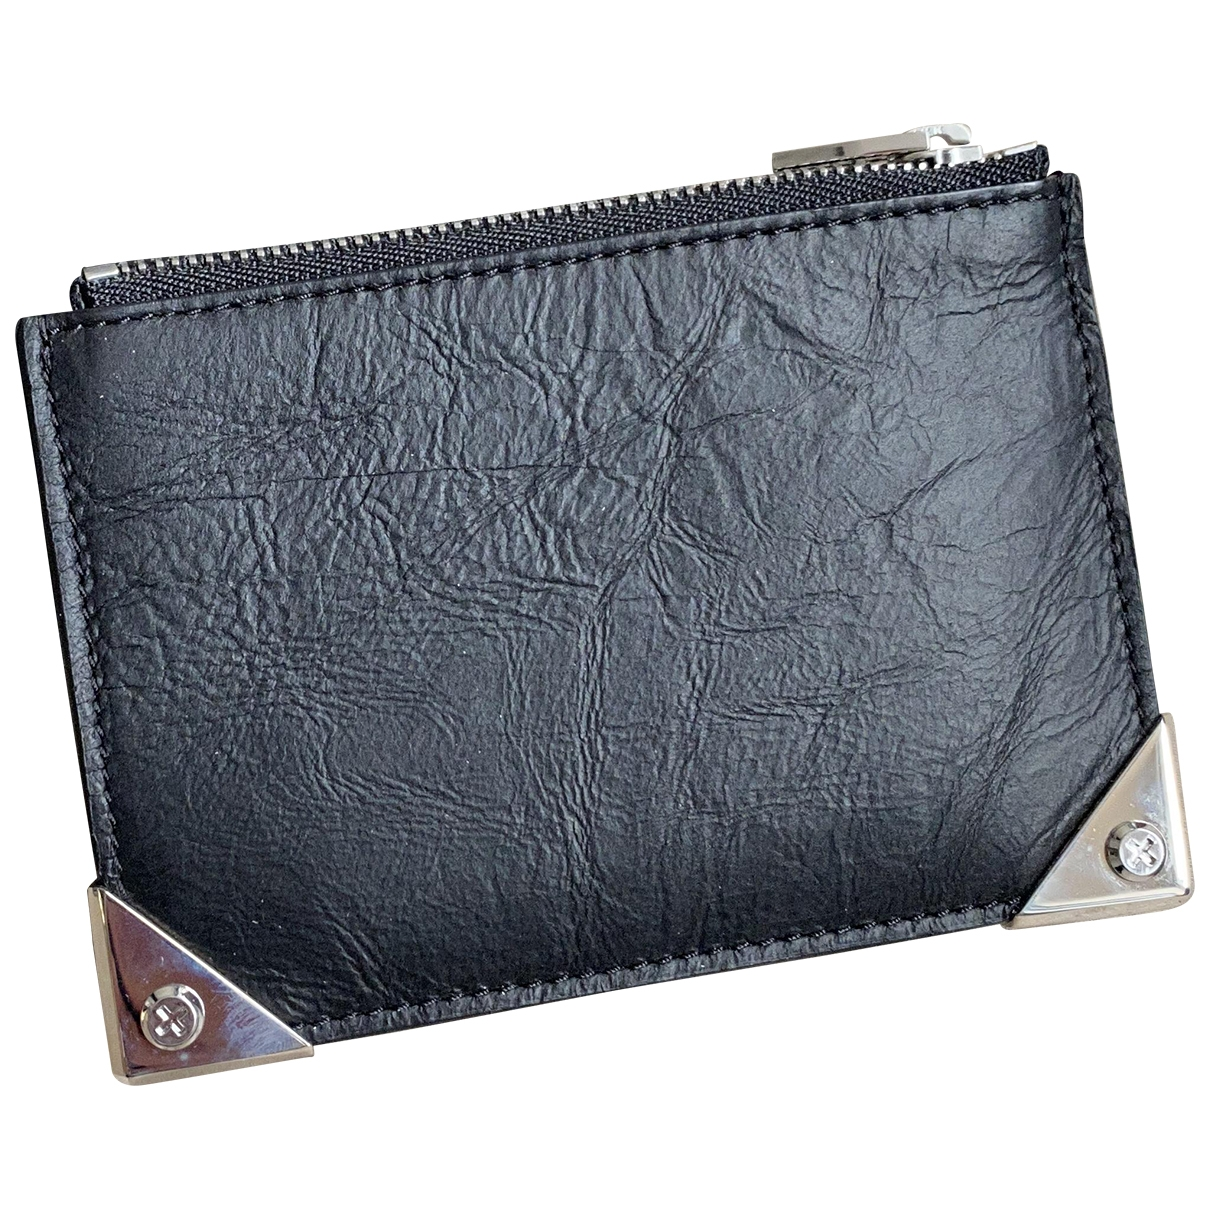 Alexander Wang \N Black Leather wallet for Women \N